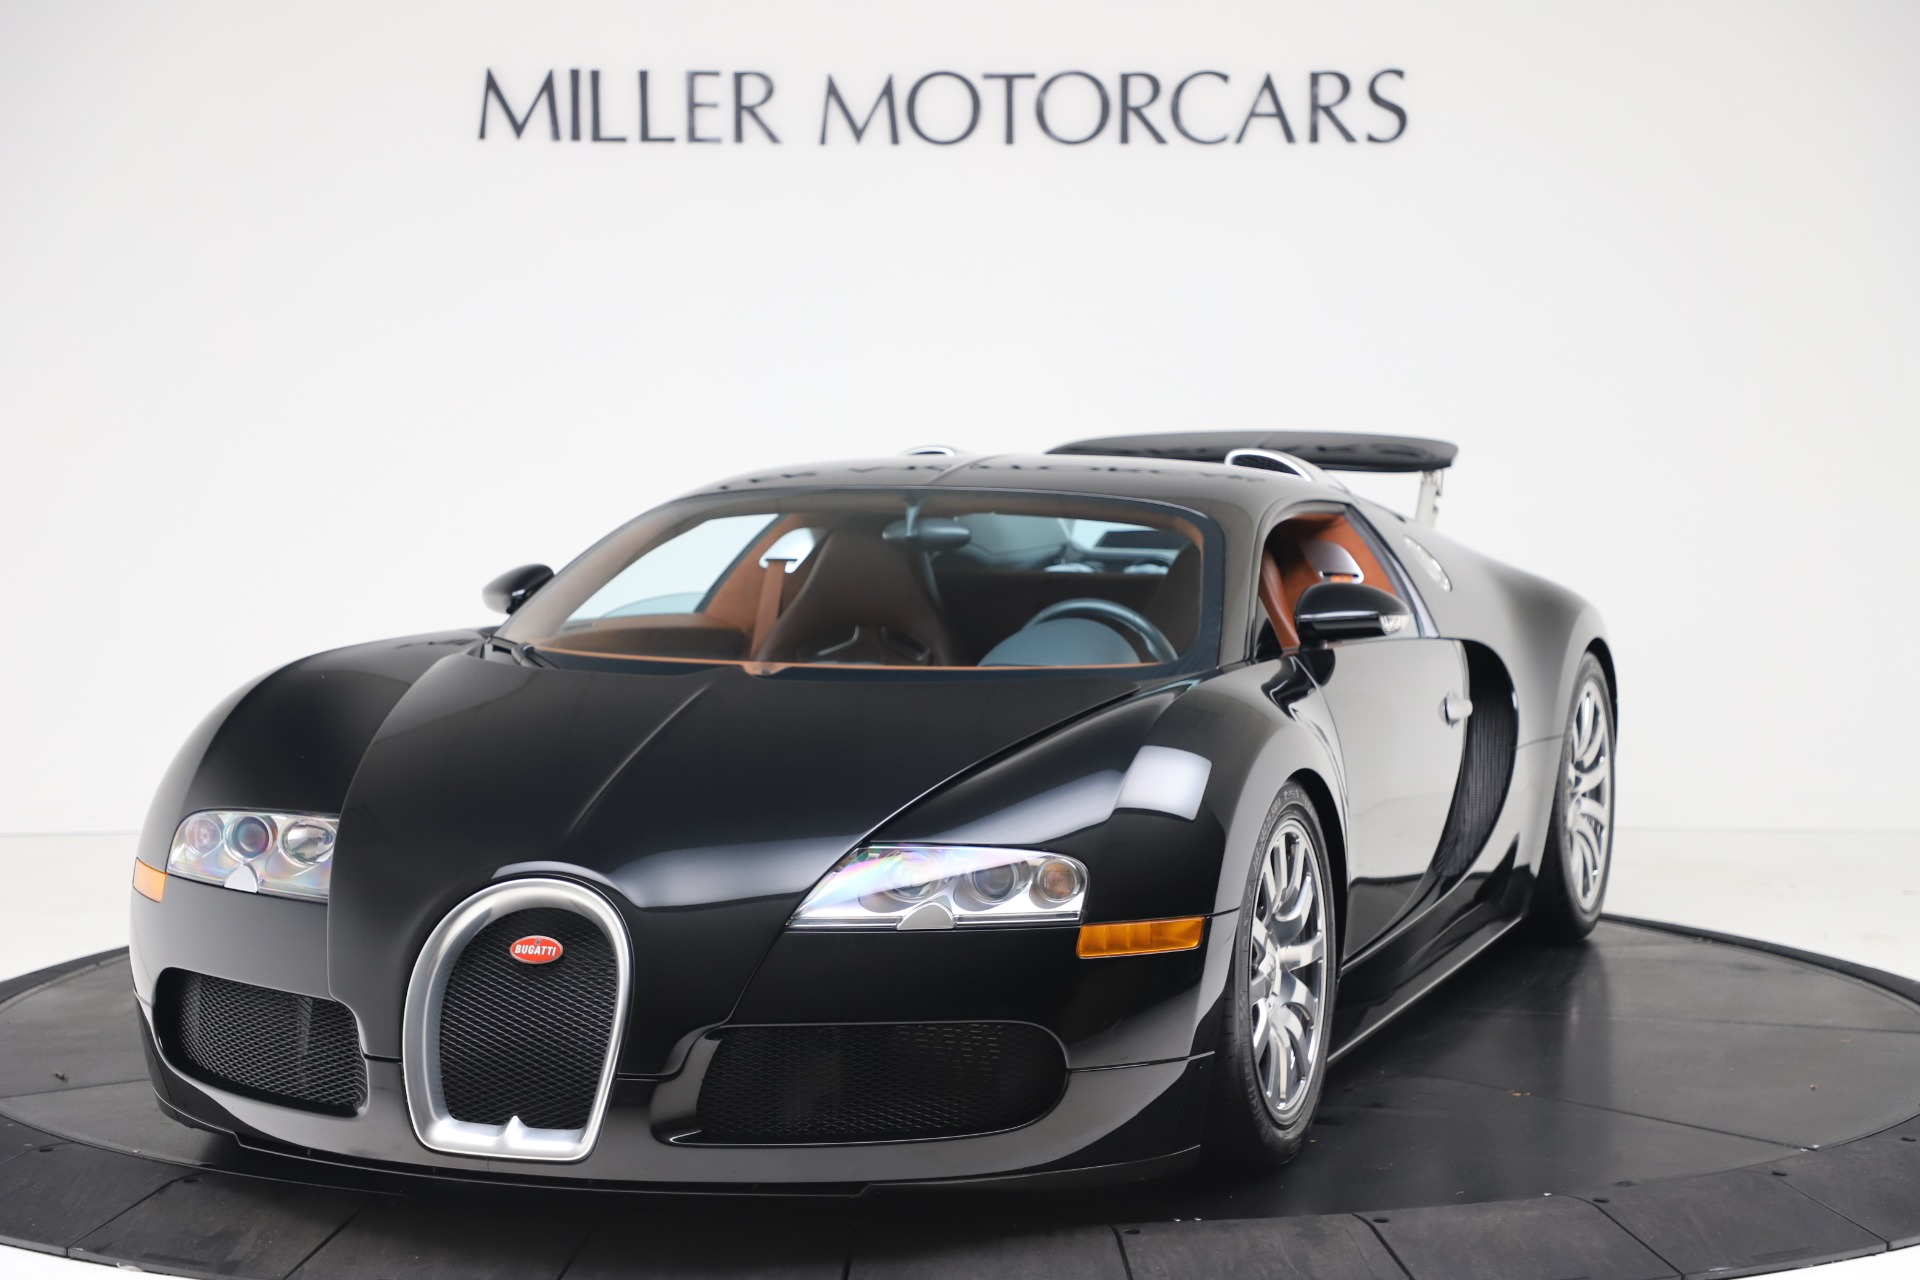 Used 2008 Bugatti Veyron 16.4 for sale Call for price at Aston Martin of Greenwich in Greenwich CT 06830 1